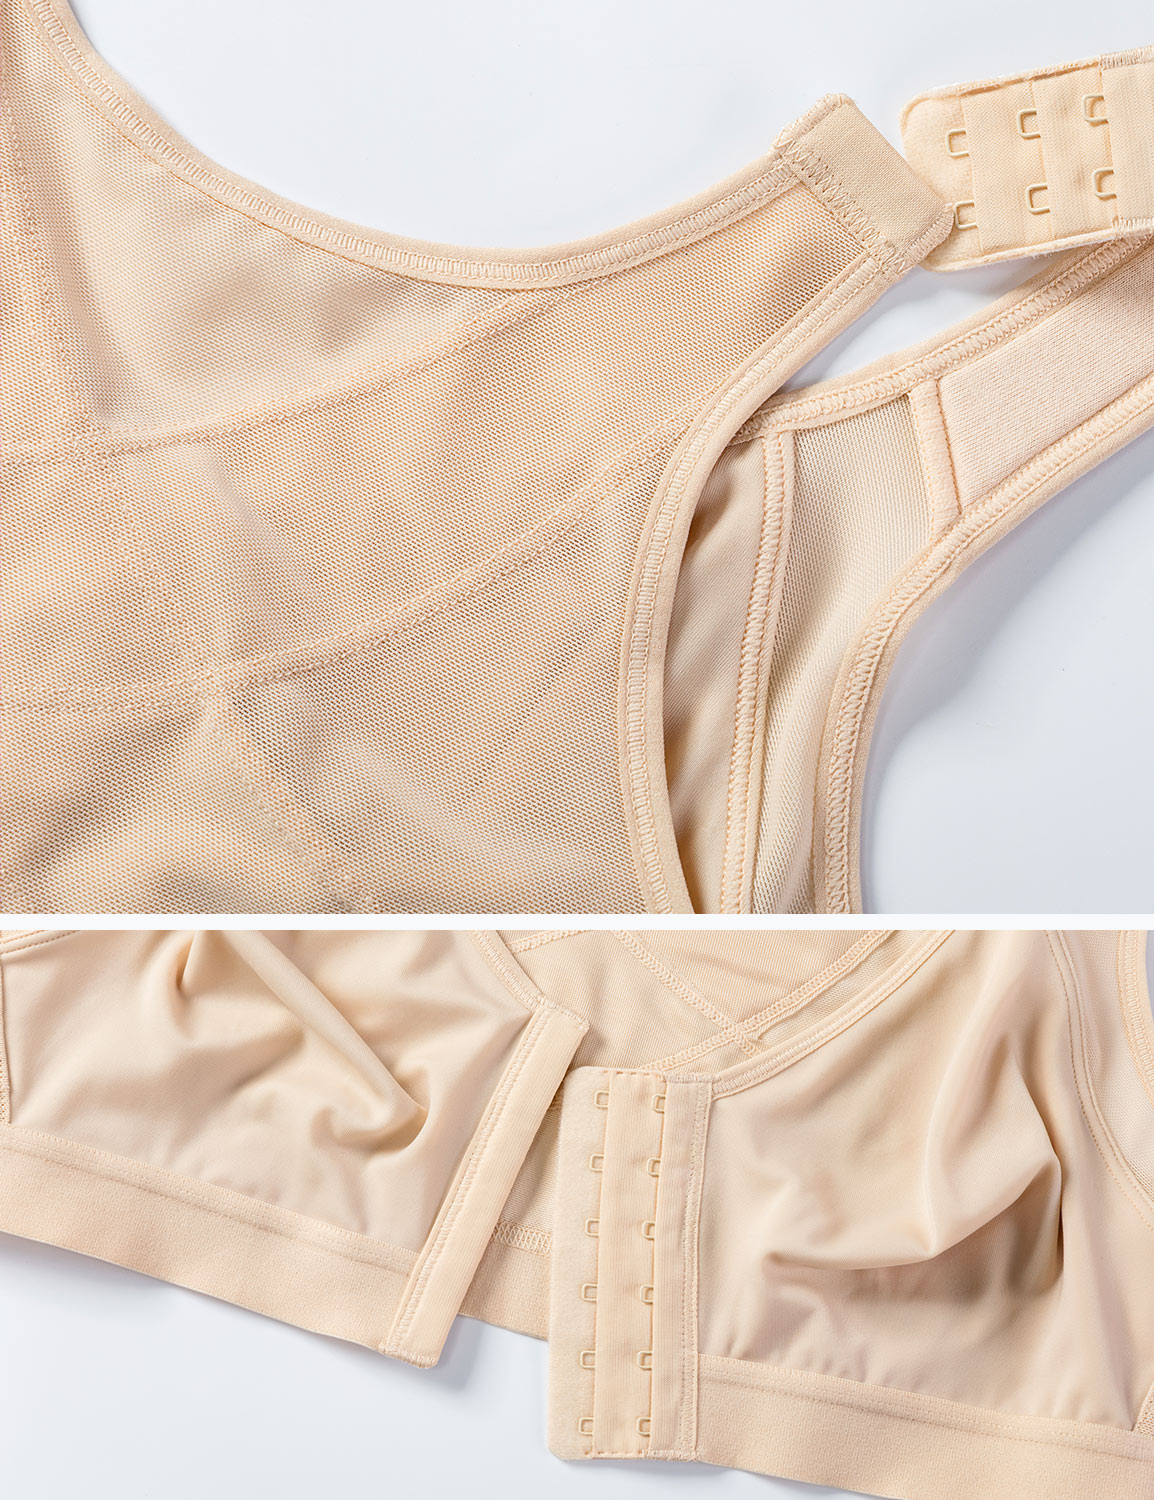 Women-039-s-Full-Coverage-Front-Closure-Wire-Free-Back-Support-Bra thumbnail 9